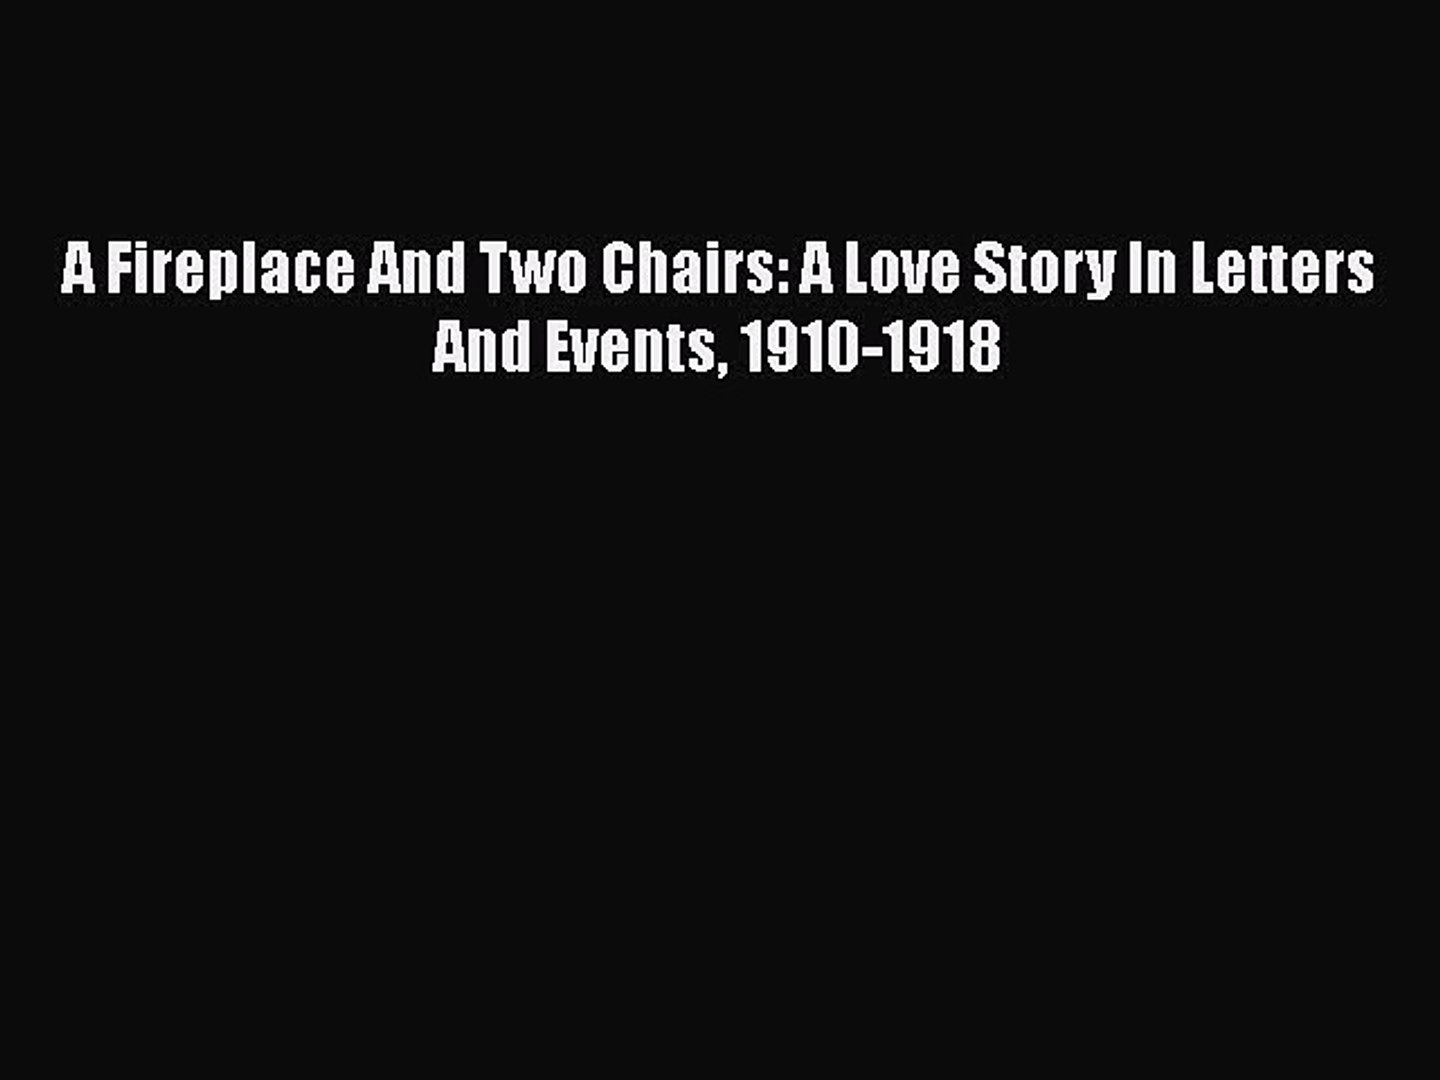 Read A Fireplace And Two Chairs: A Love Story In Letters And Events 1910-1918 PDF Online